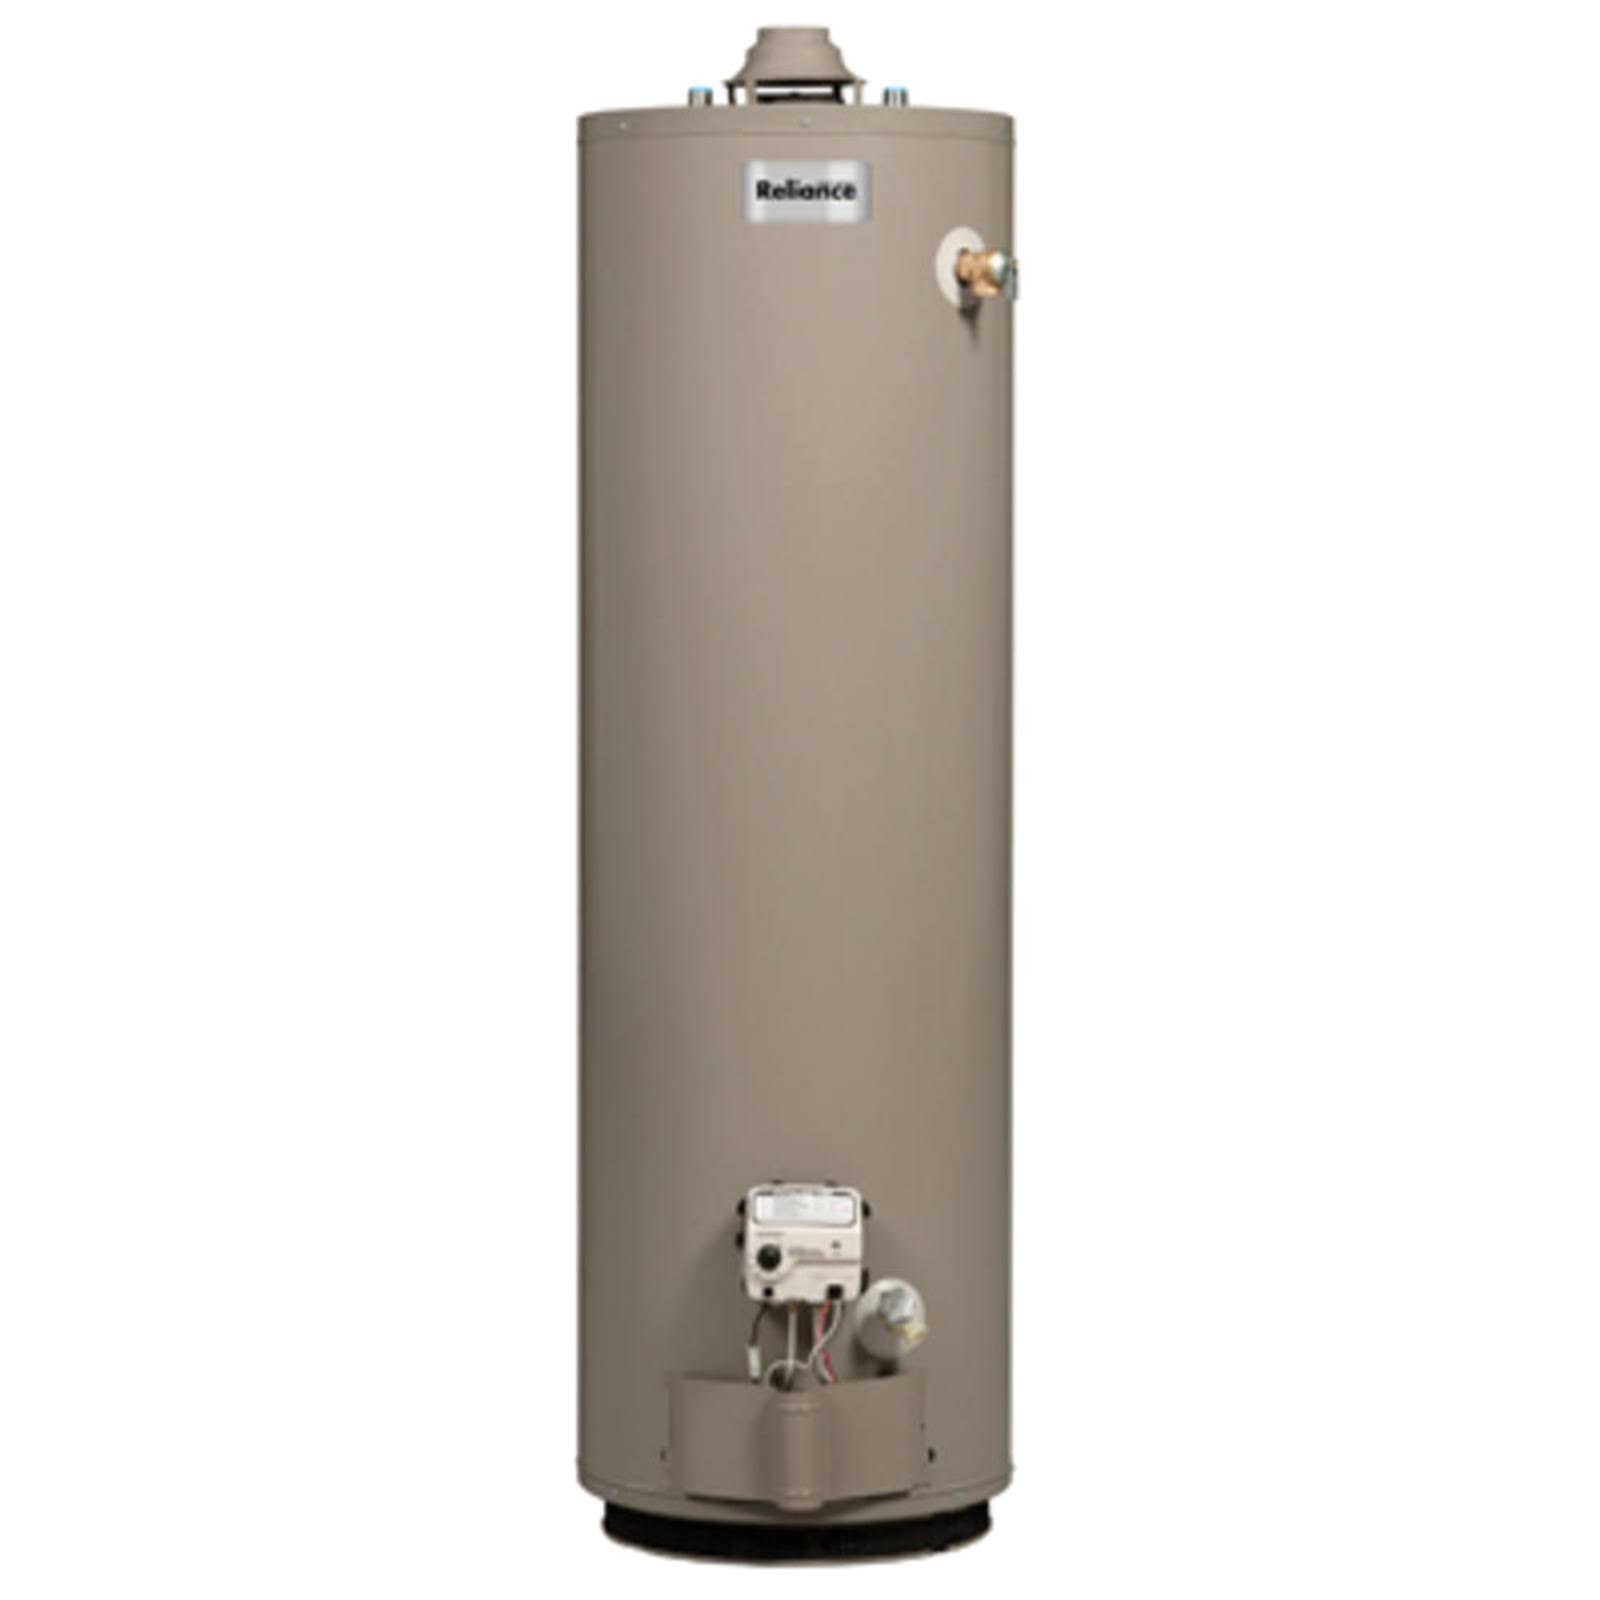 Reliance 6-30-nocs 400 Natural Gas Short Water Heater - 30 Gallon